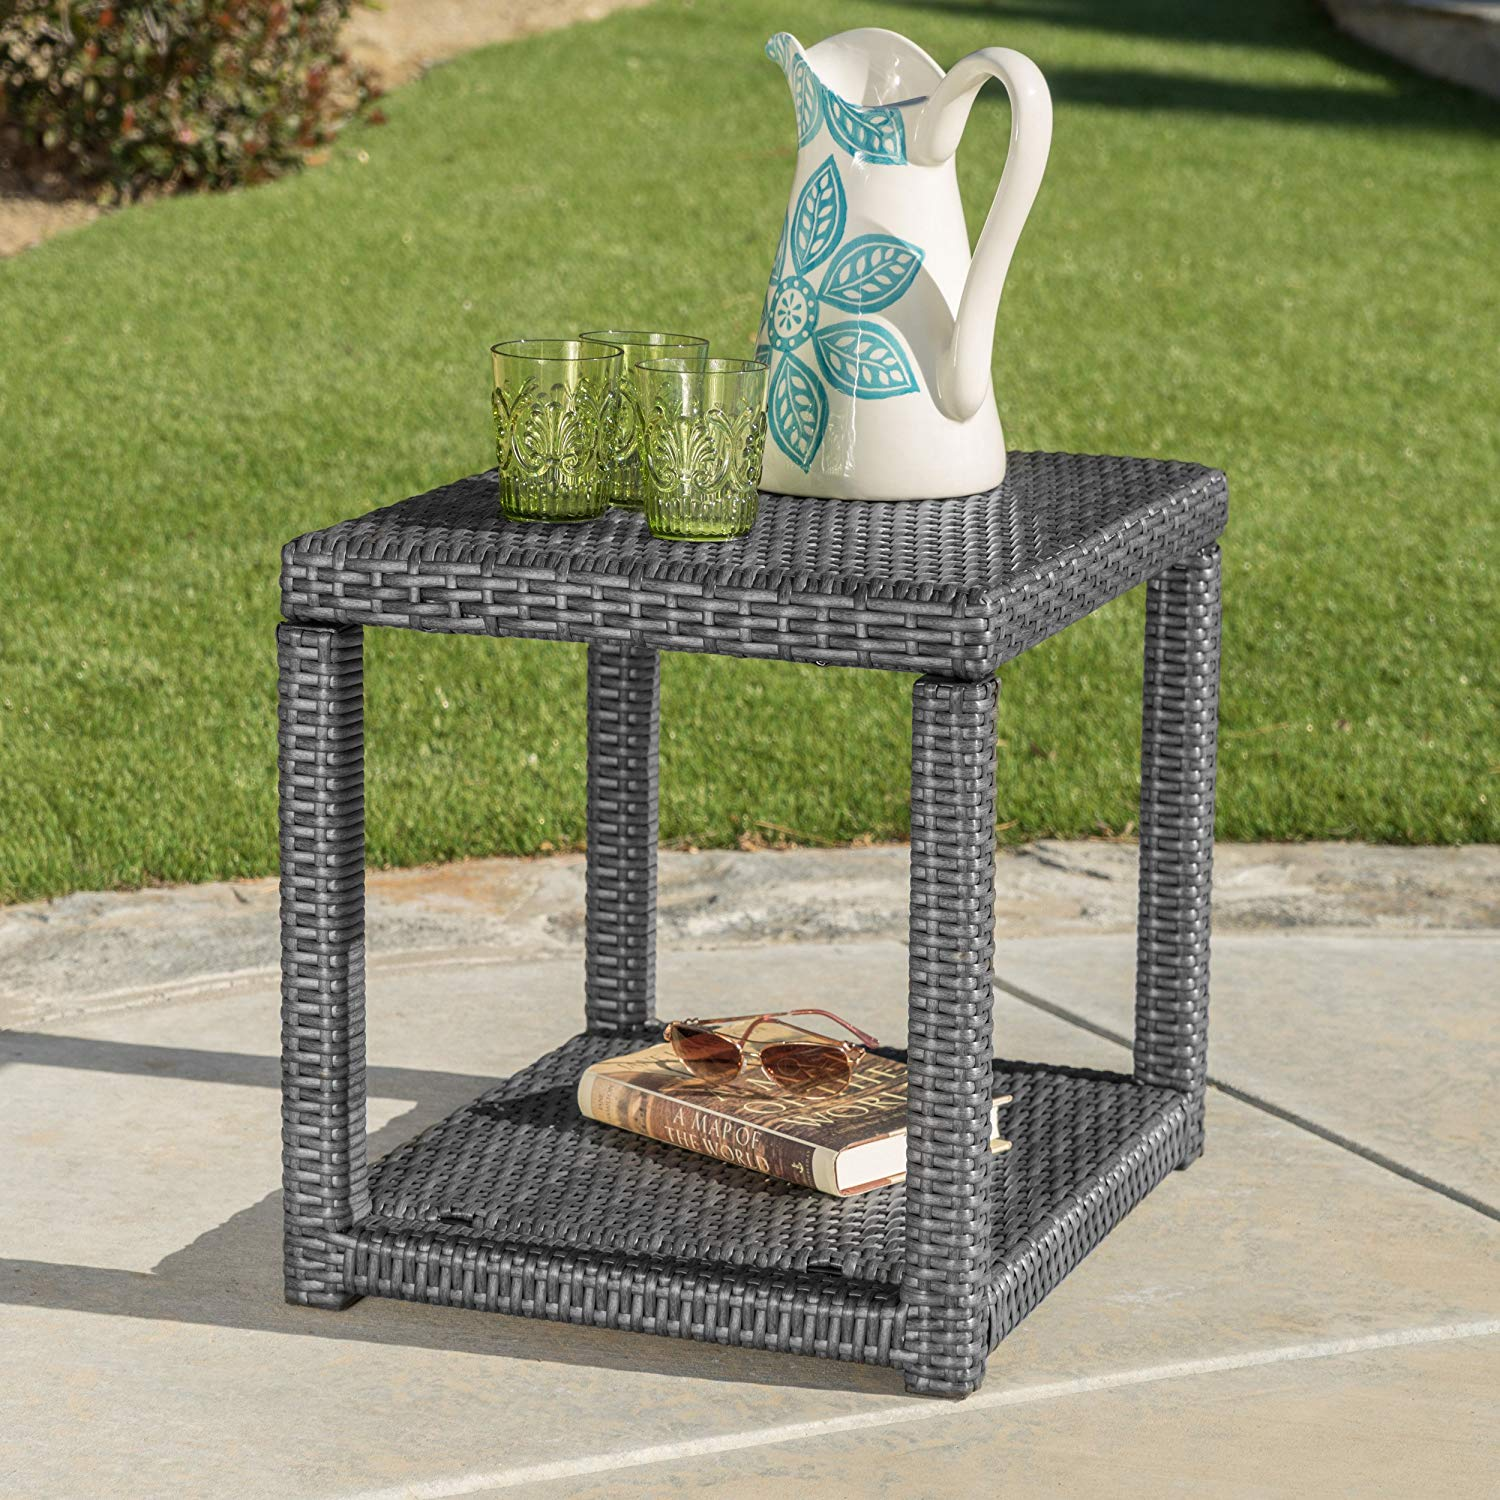 christopher knight home palawan outdoor grey wicker accent table dining with wine rack cart brass bedside tall lamp base patio furniture sets umbrella bar height rustic pedestal